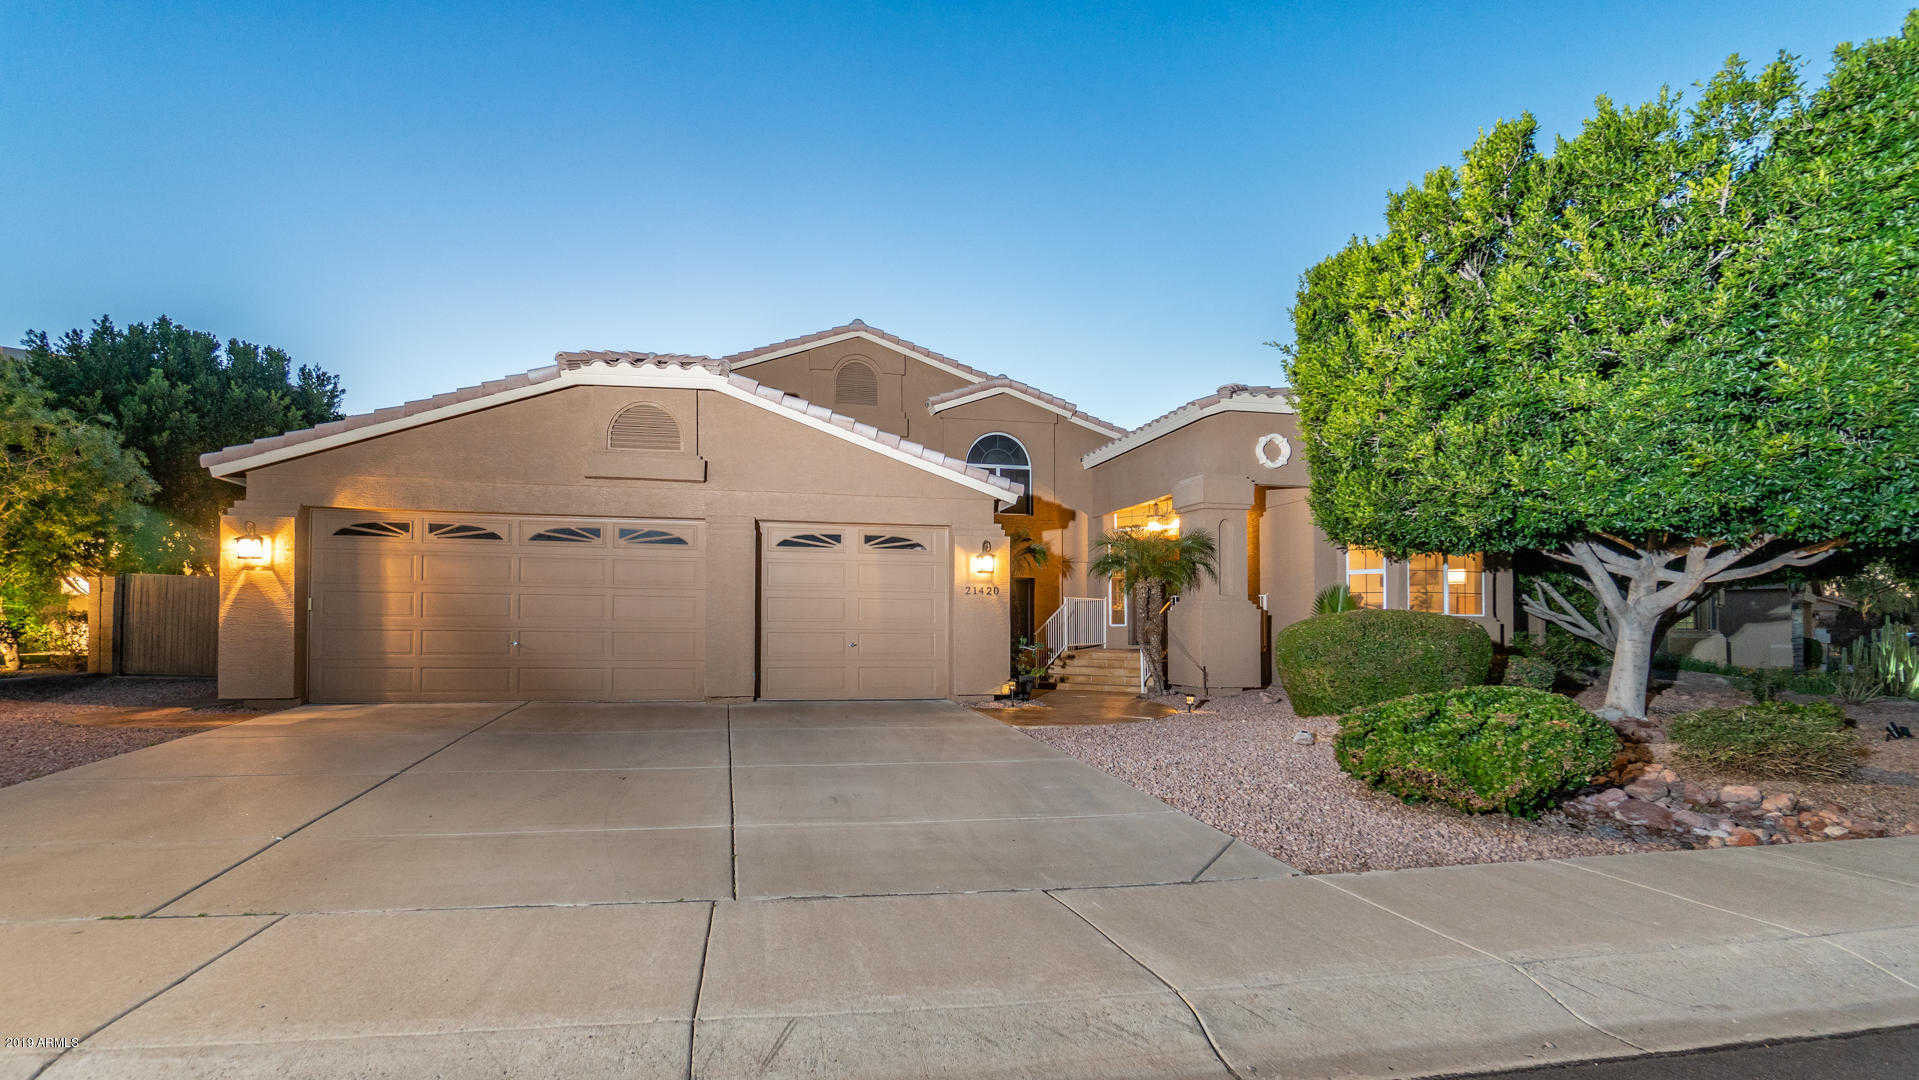 $669,000 - 5Br/3Ba - Home for Sale in Arrowhead Lakes, Glendale